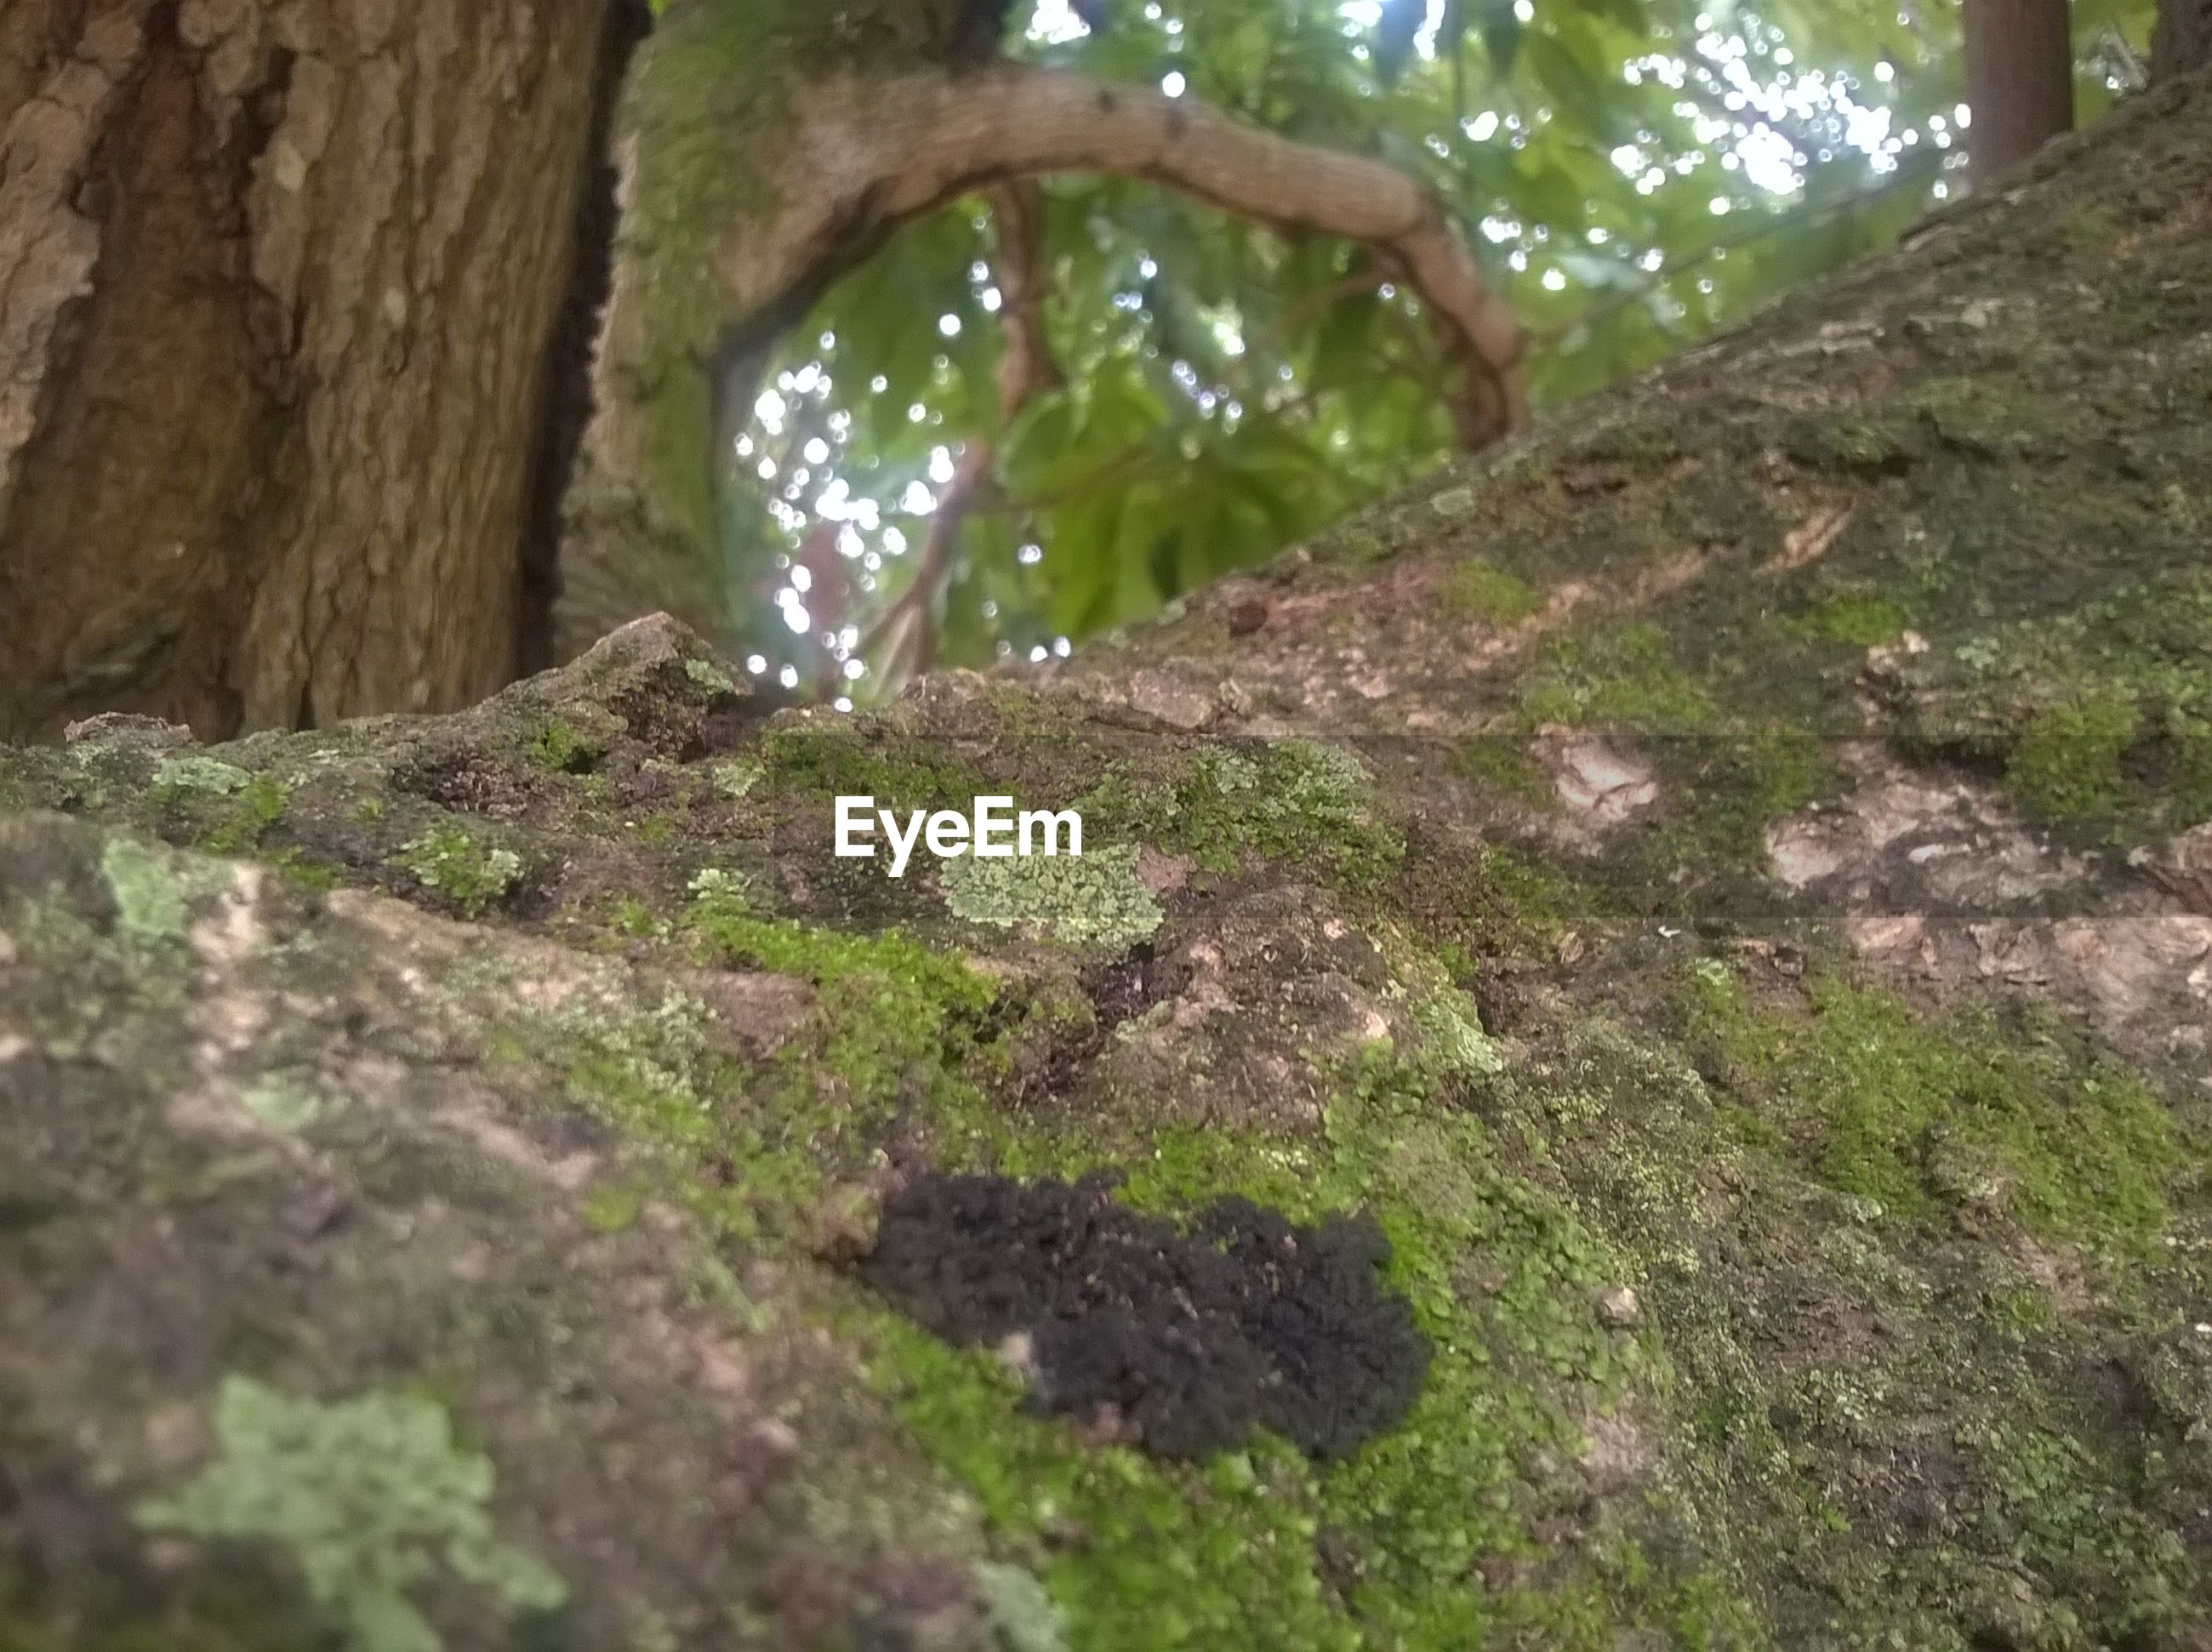 tree, nature, growth, no people, day, beauty in nature, plant, tree trunk, forest, tranquility, outdoors, branch, animal themes, close-up